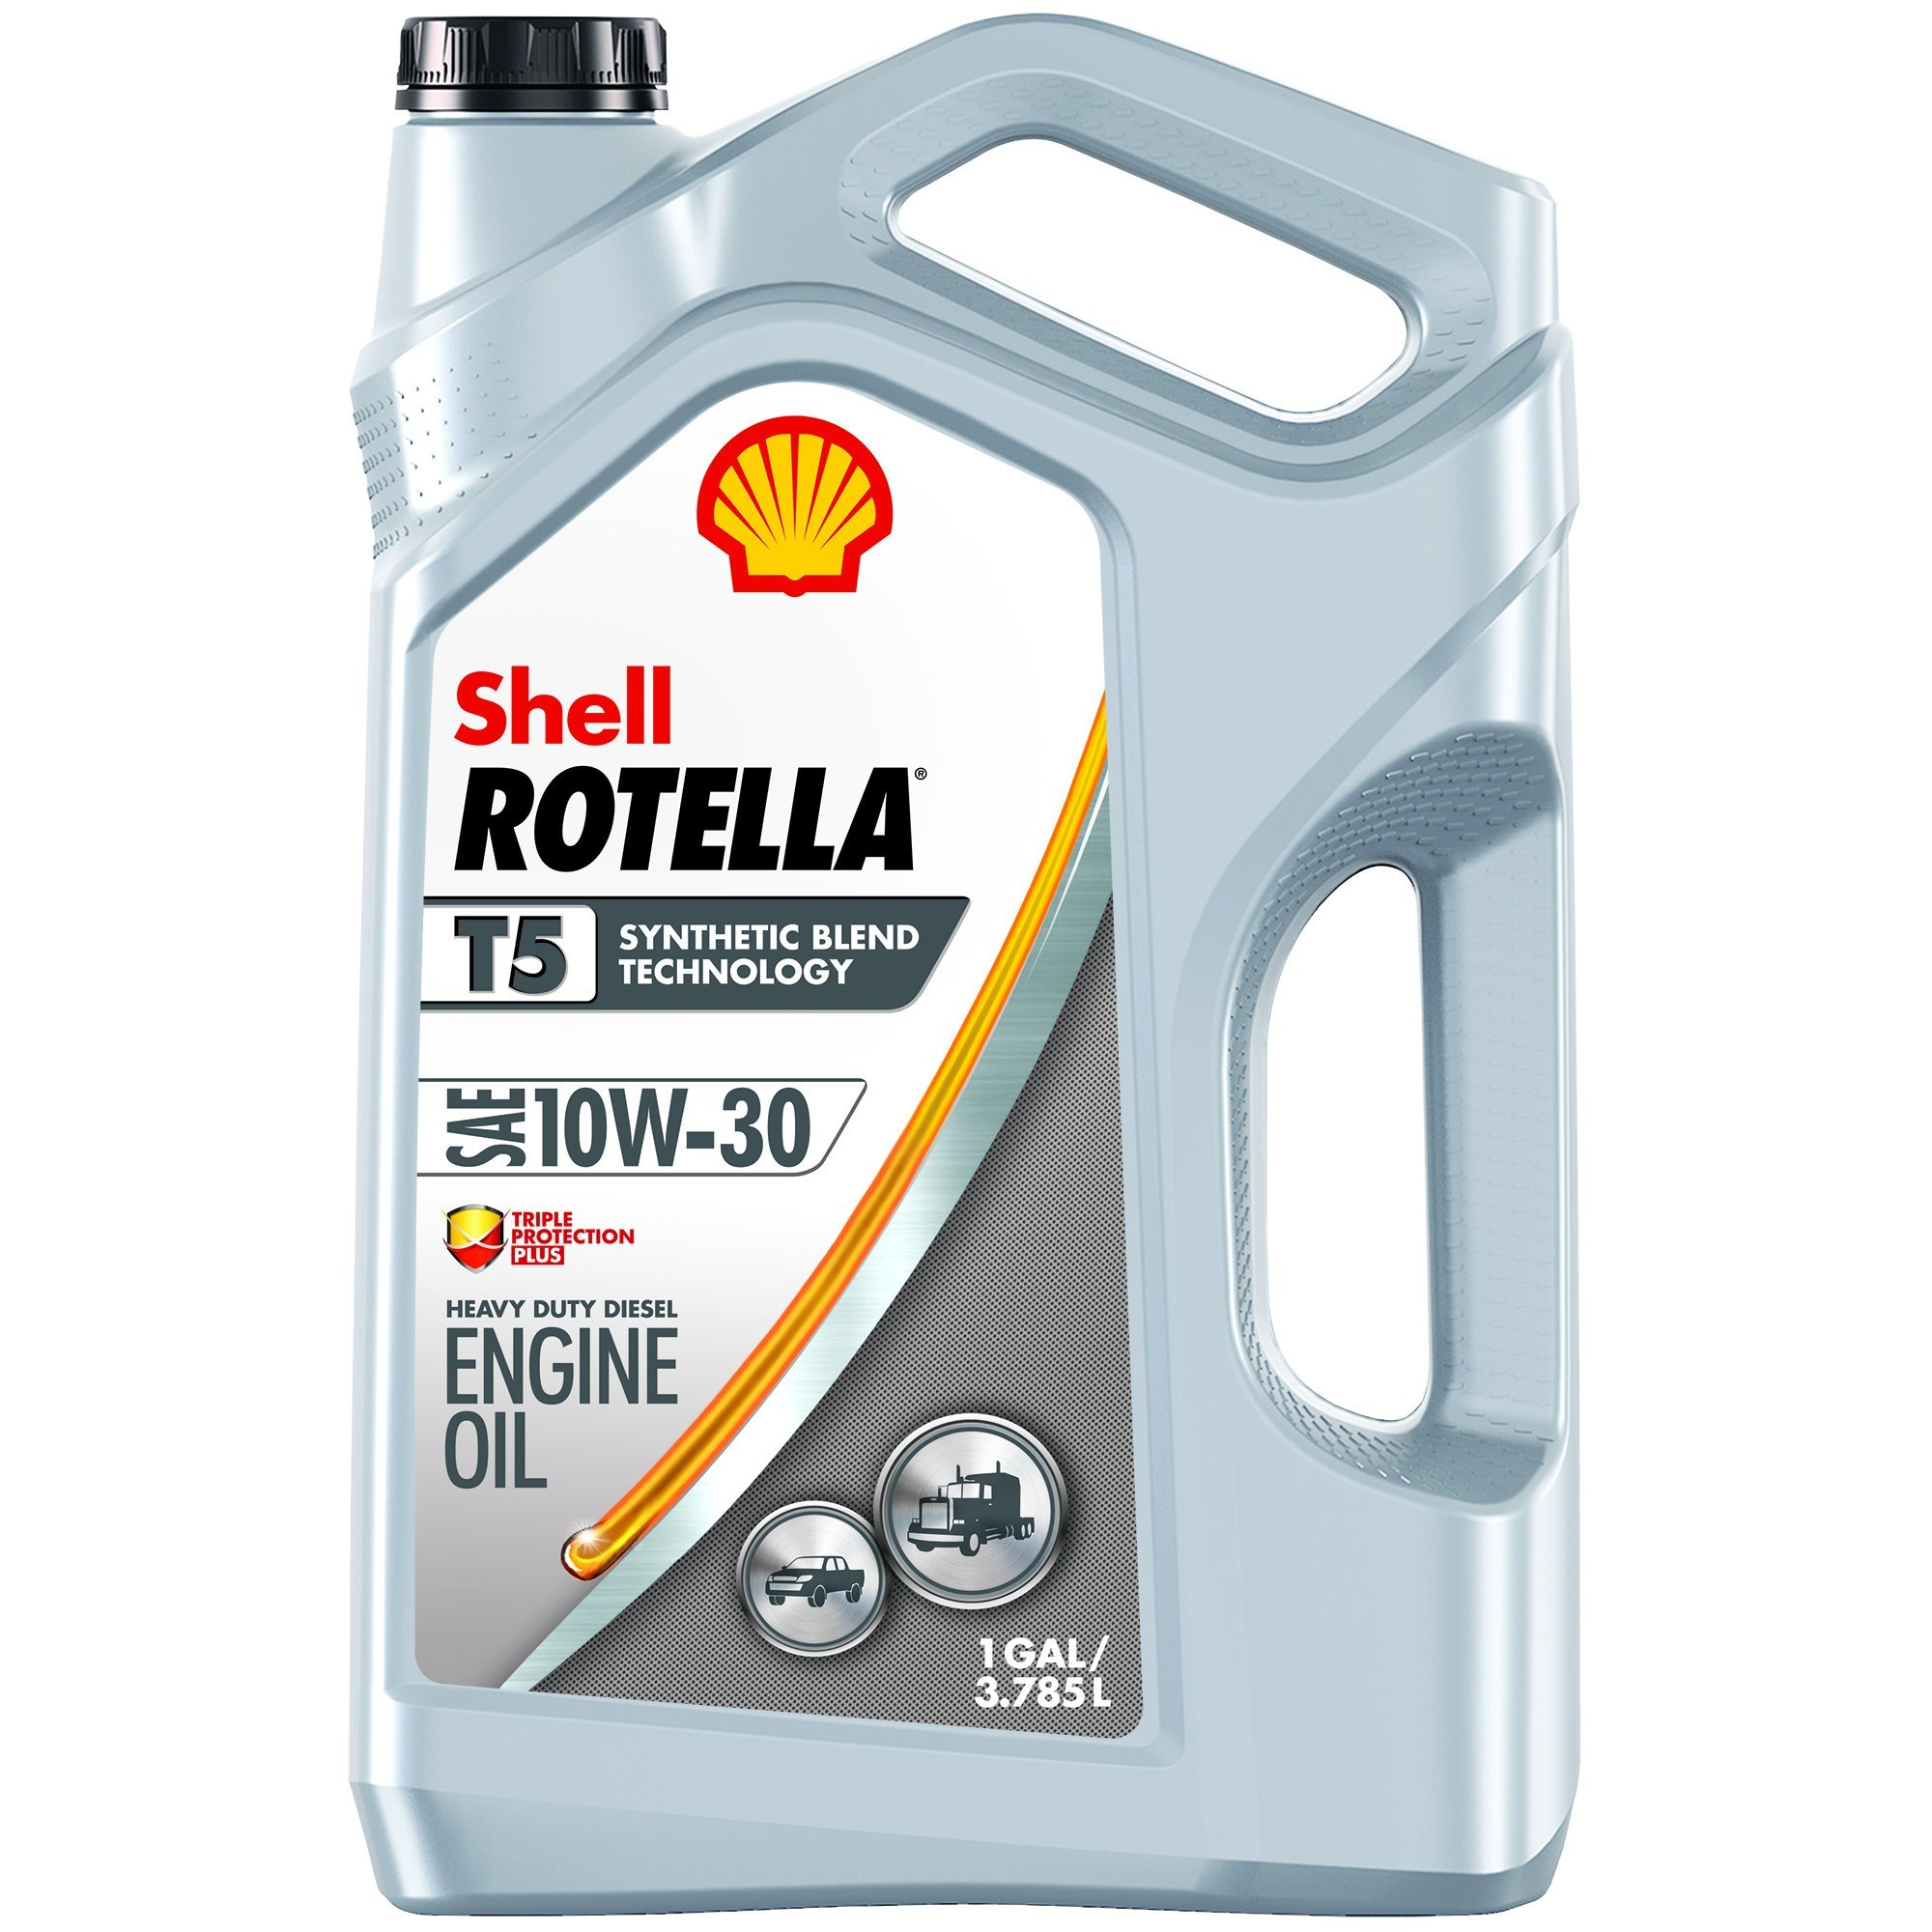 Shell ROTELLA T5 10W-30 Synthetic Blend, Heavy Duty Engine Diesel Oil, 1 Gallon by Shell Rotella T